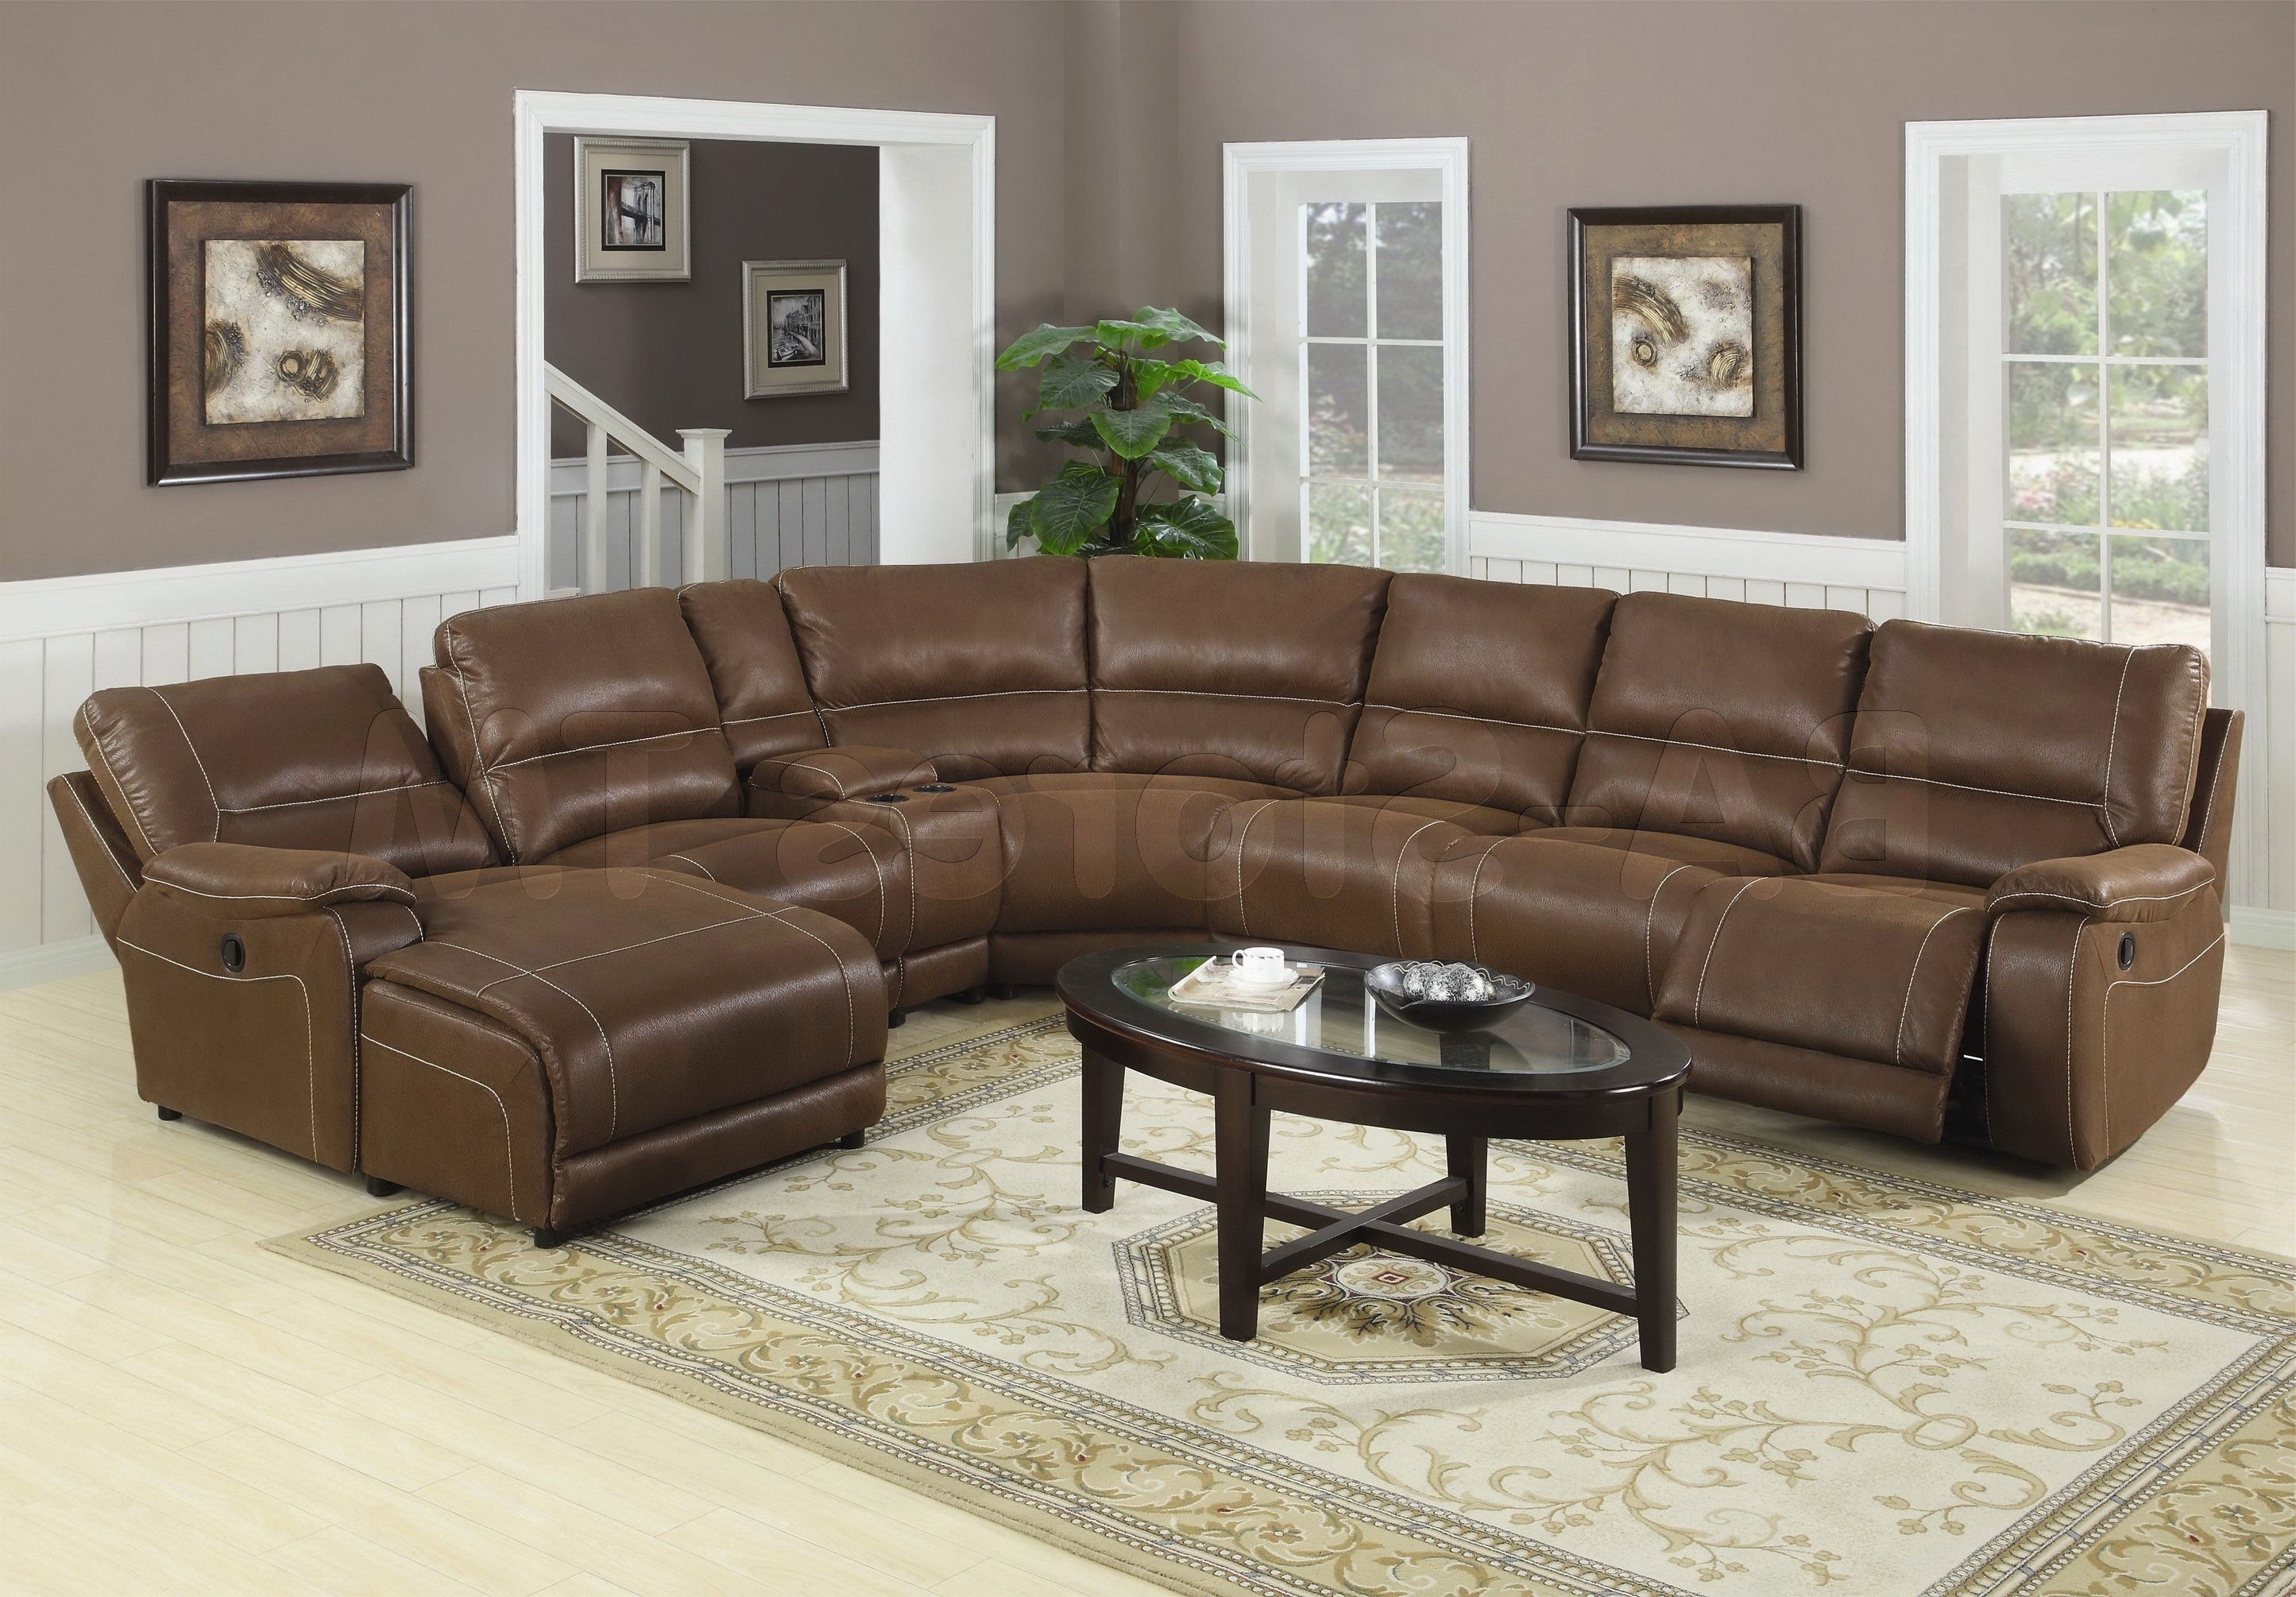 Microsuede Sectional Sofas Intended For Best And Newest Beautiful Microfiber Sectional Sofa 2018 – Couches And Sofas Ideas (View 4 of 15)